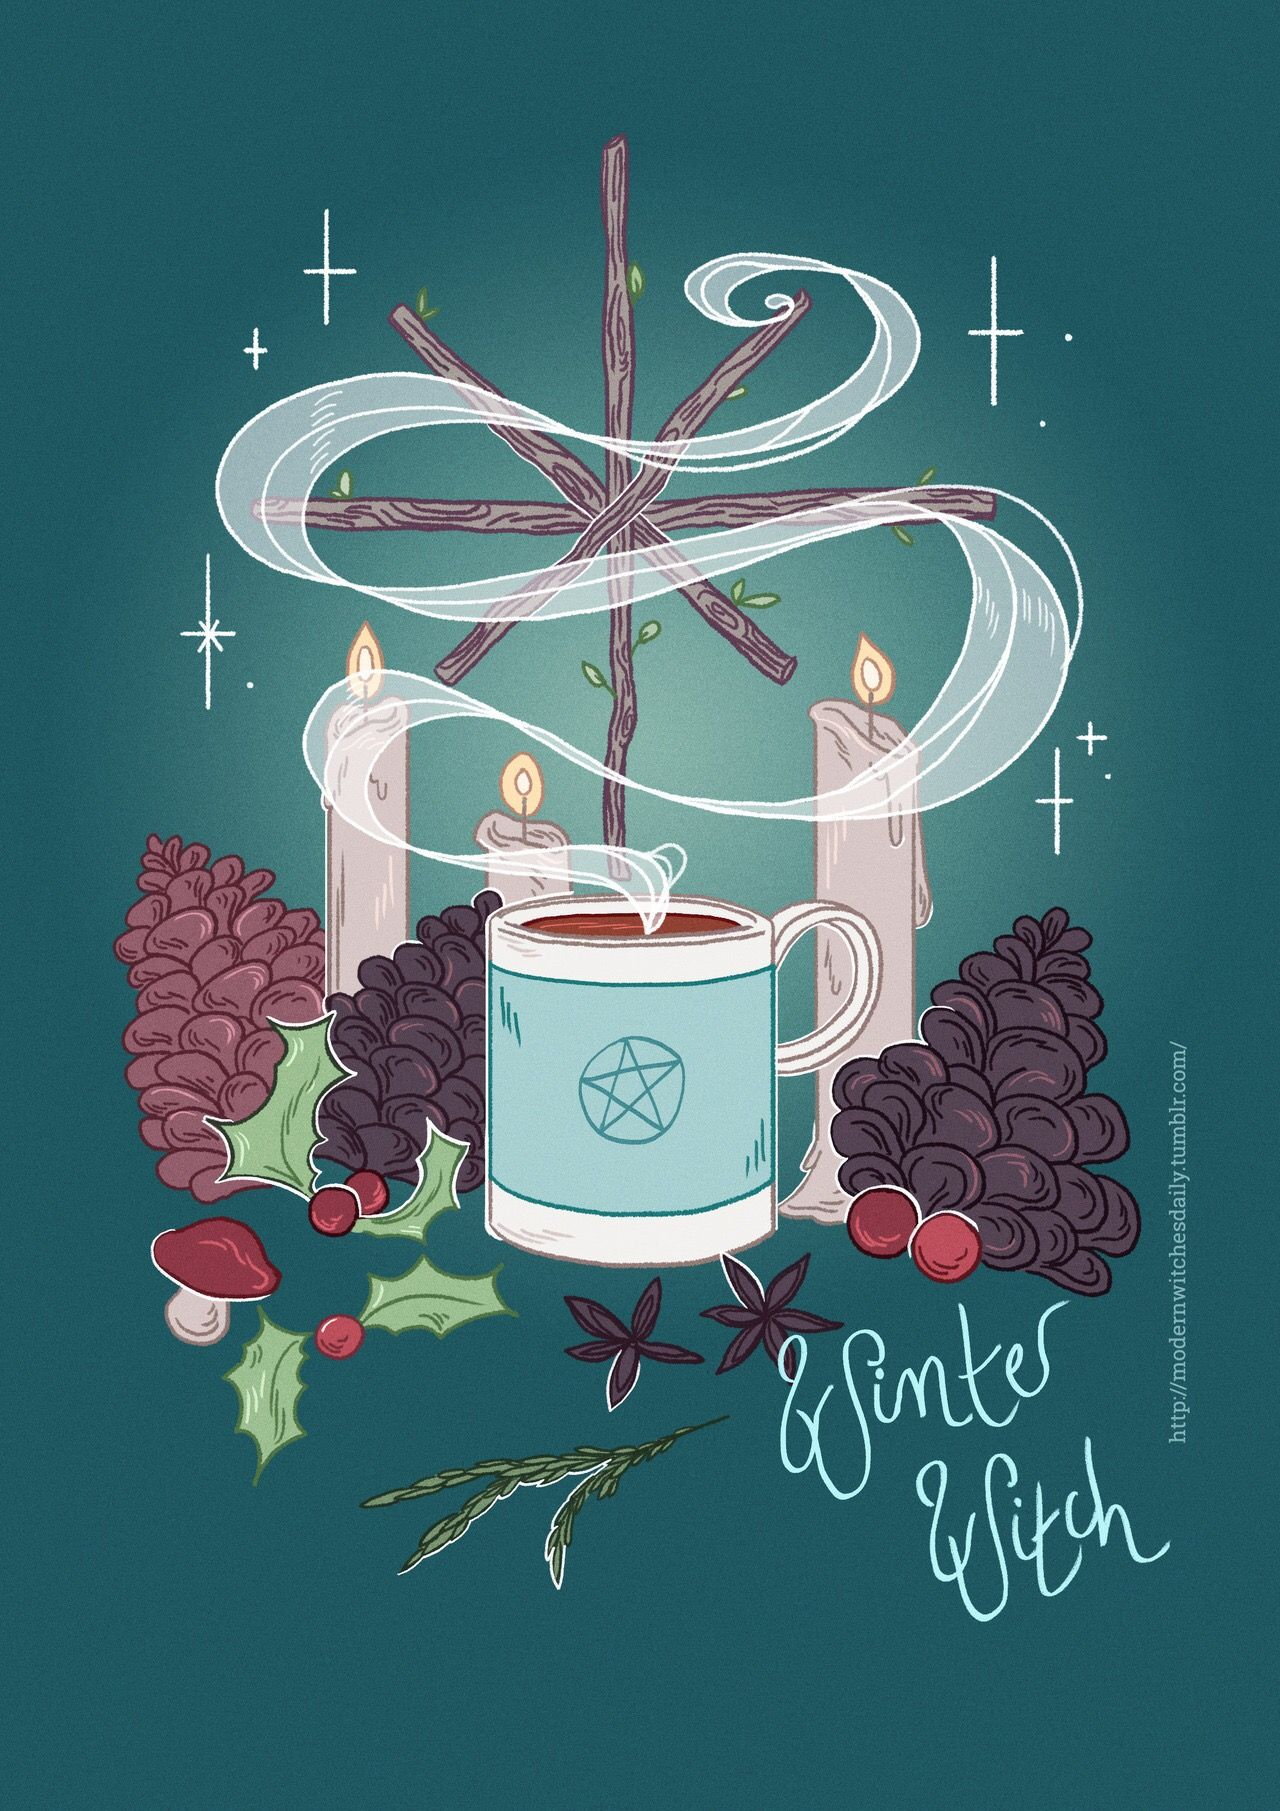 Pin by RiverHeart on Викканство Witch wallpaper, Witchy